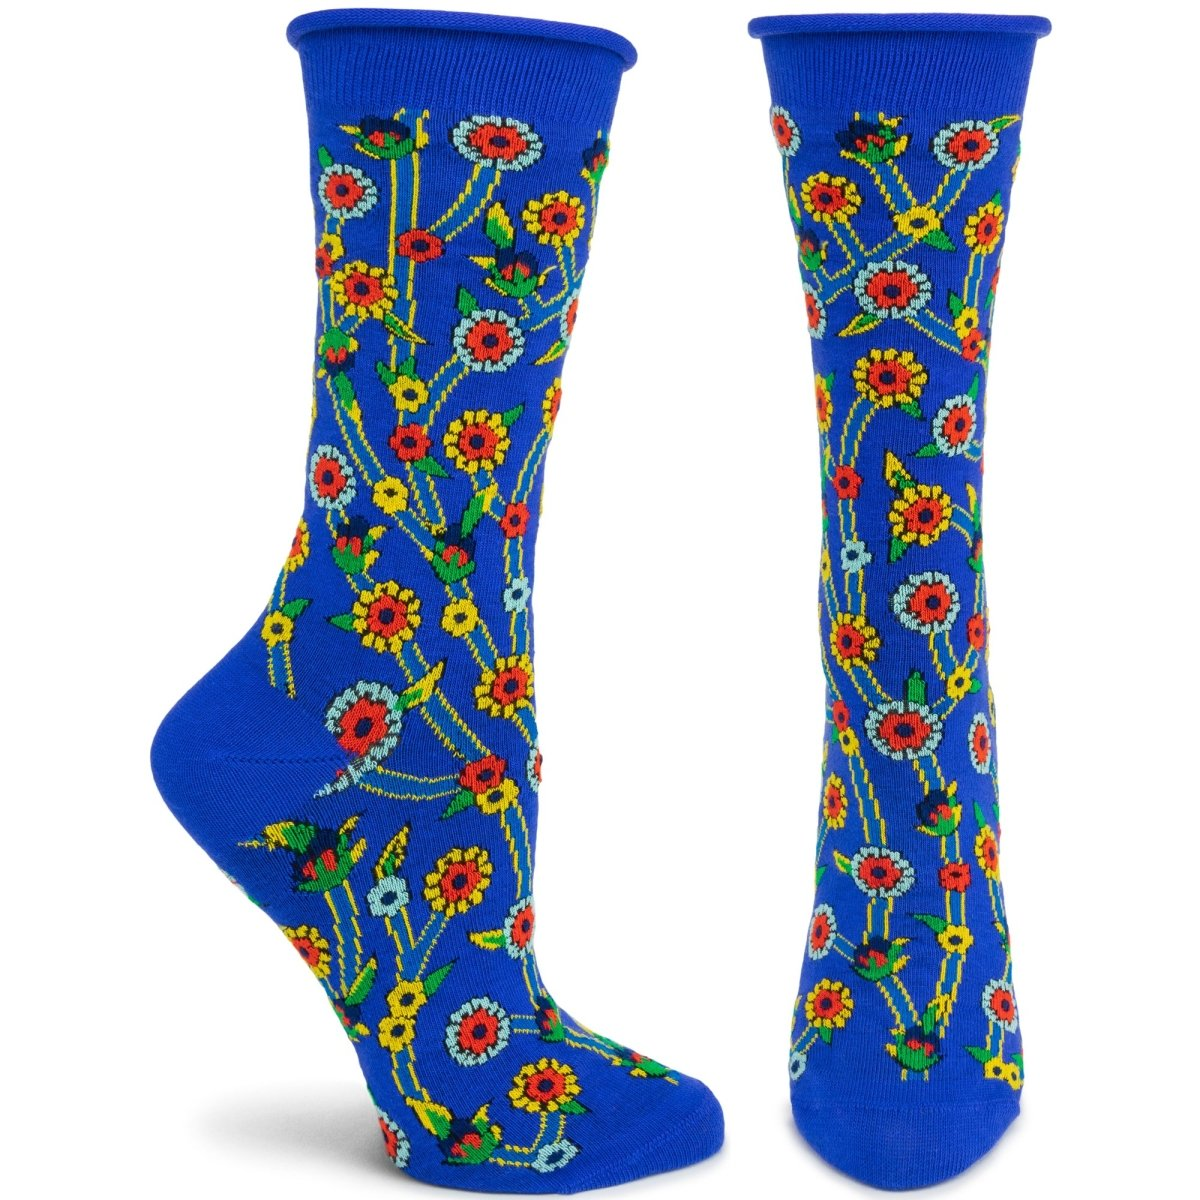 Beautious Buds Sock - Ozone Design Inc